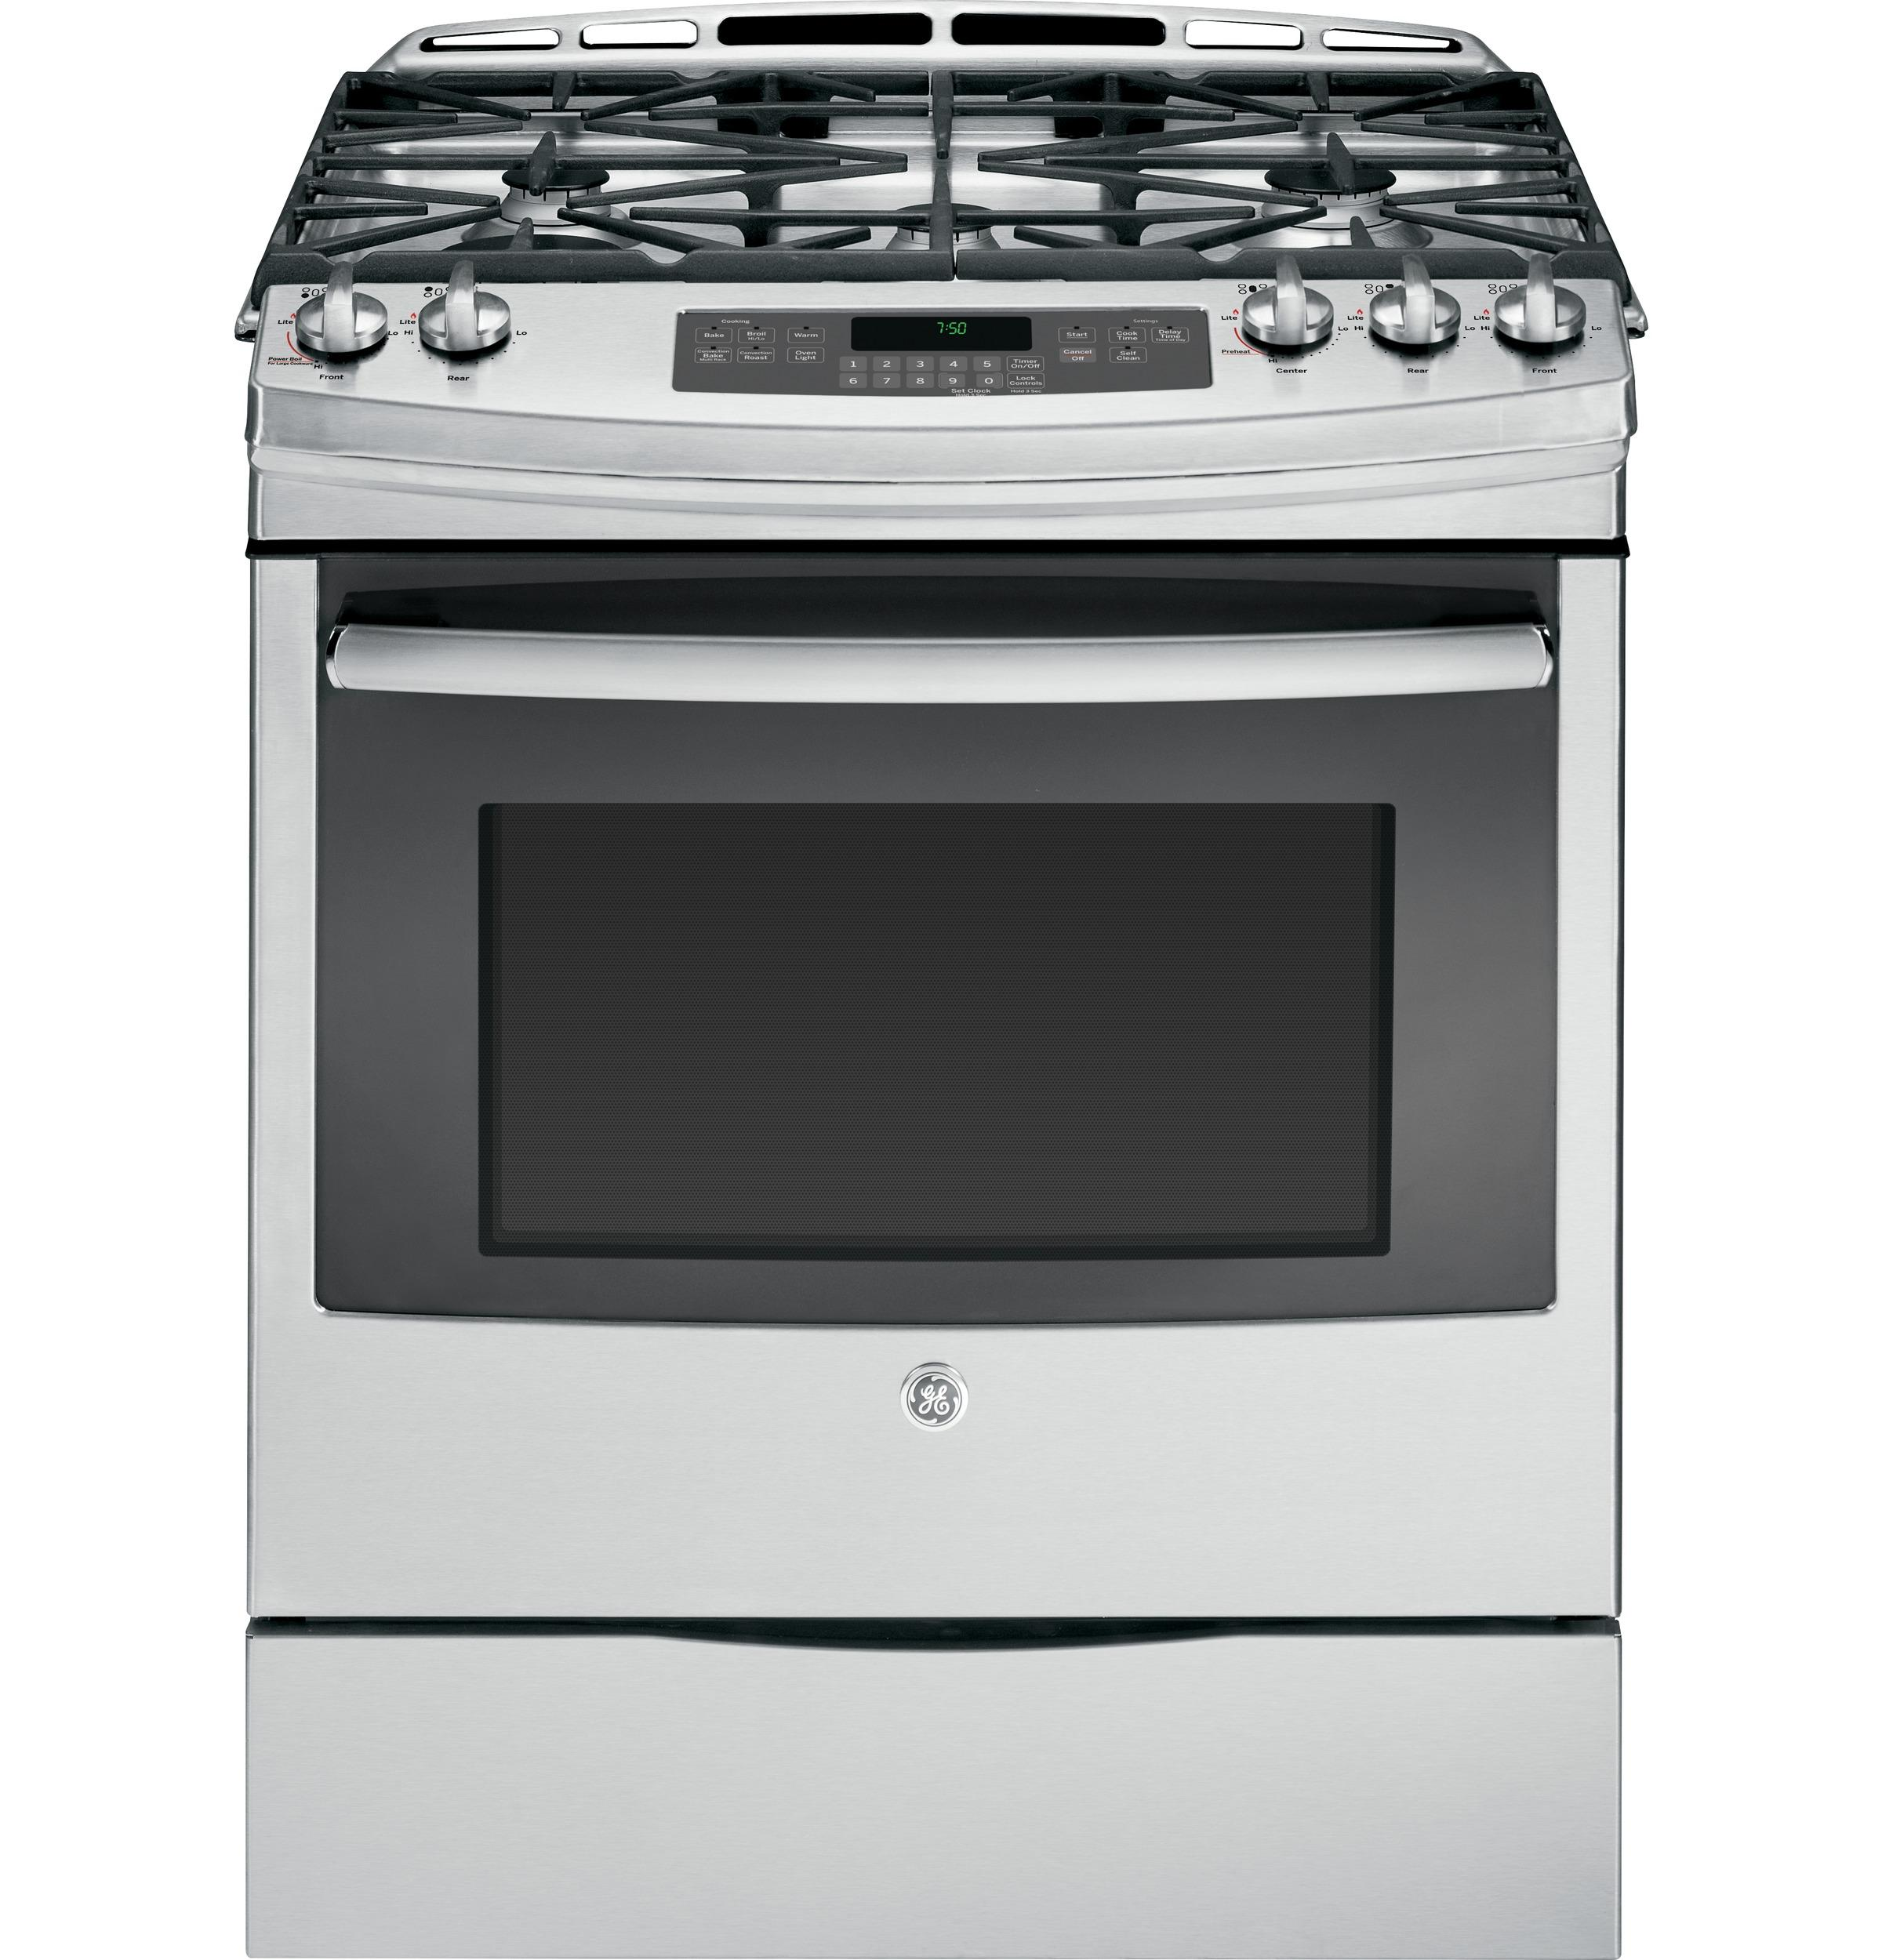 GE APPLIANCES JGS750SEFSS